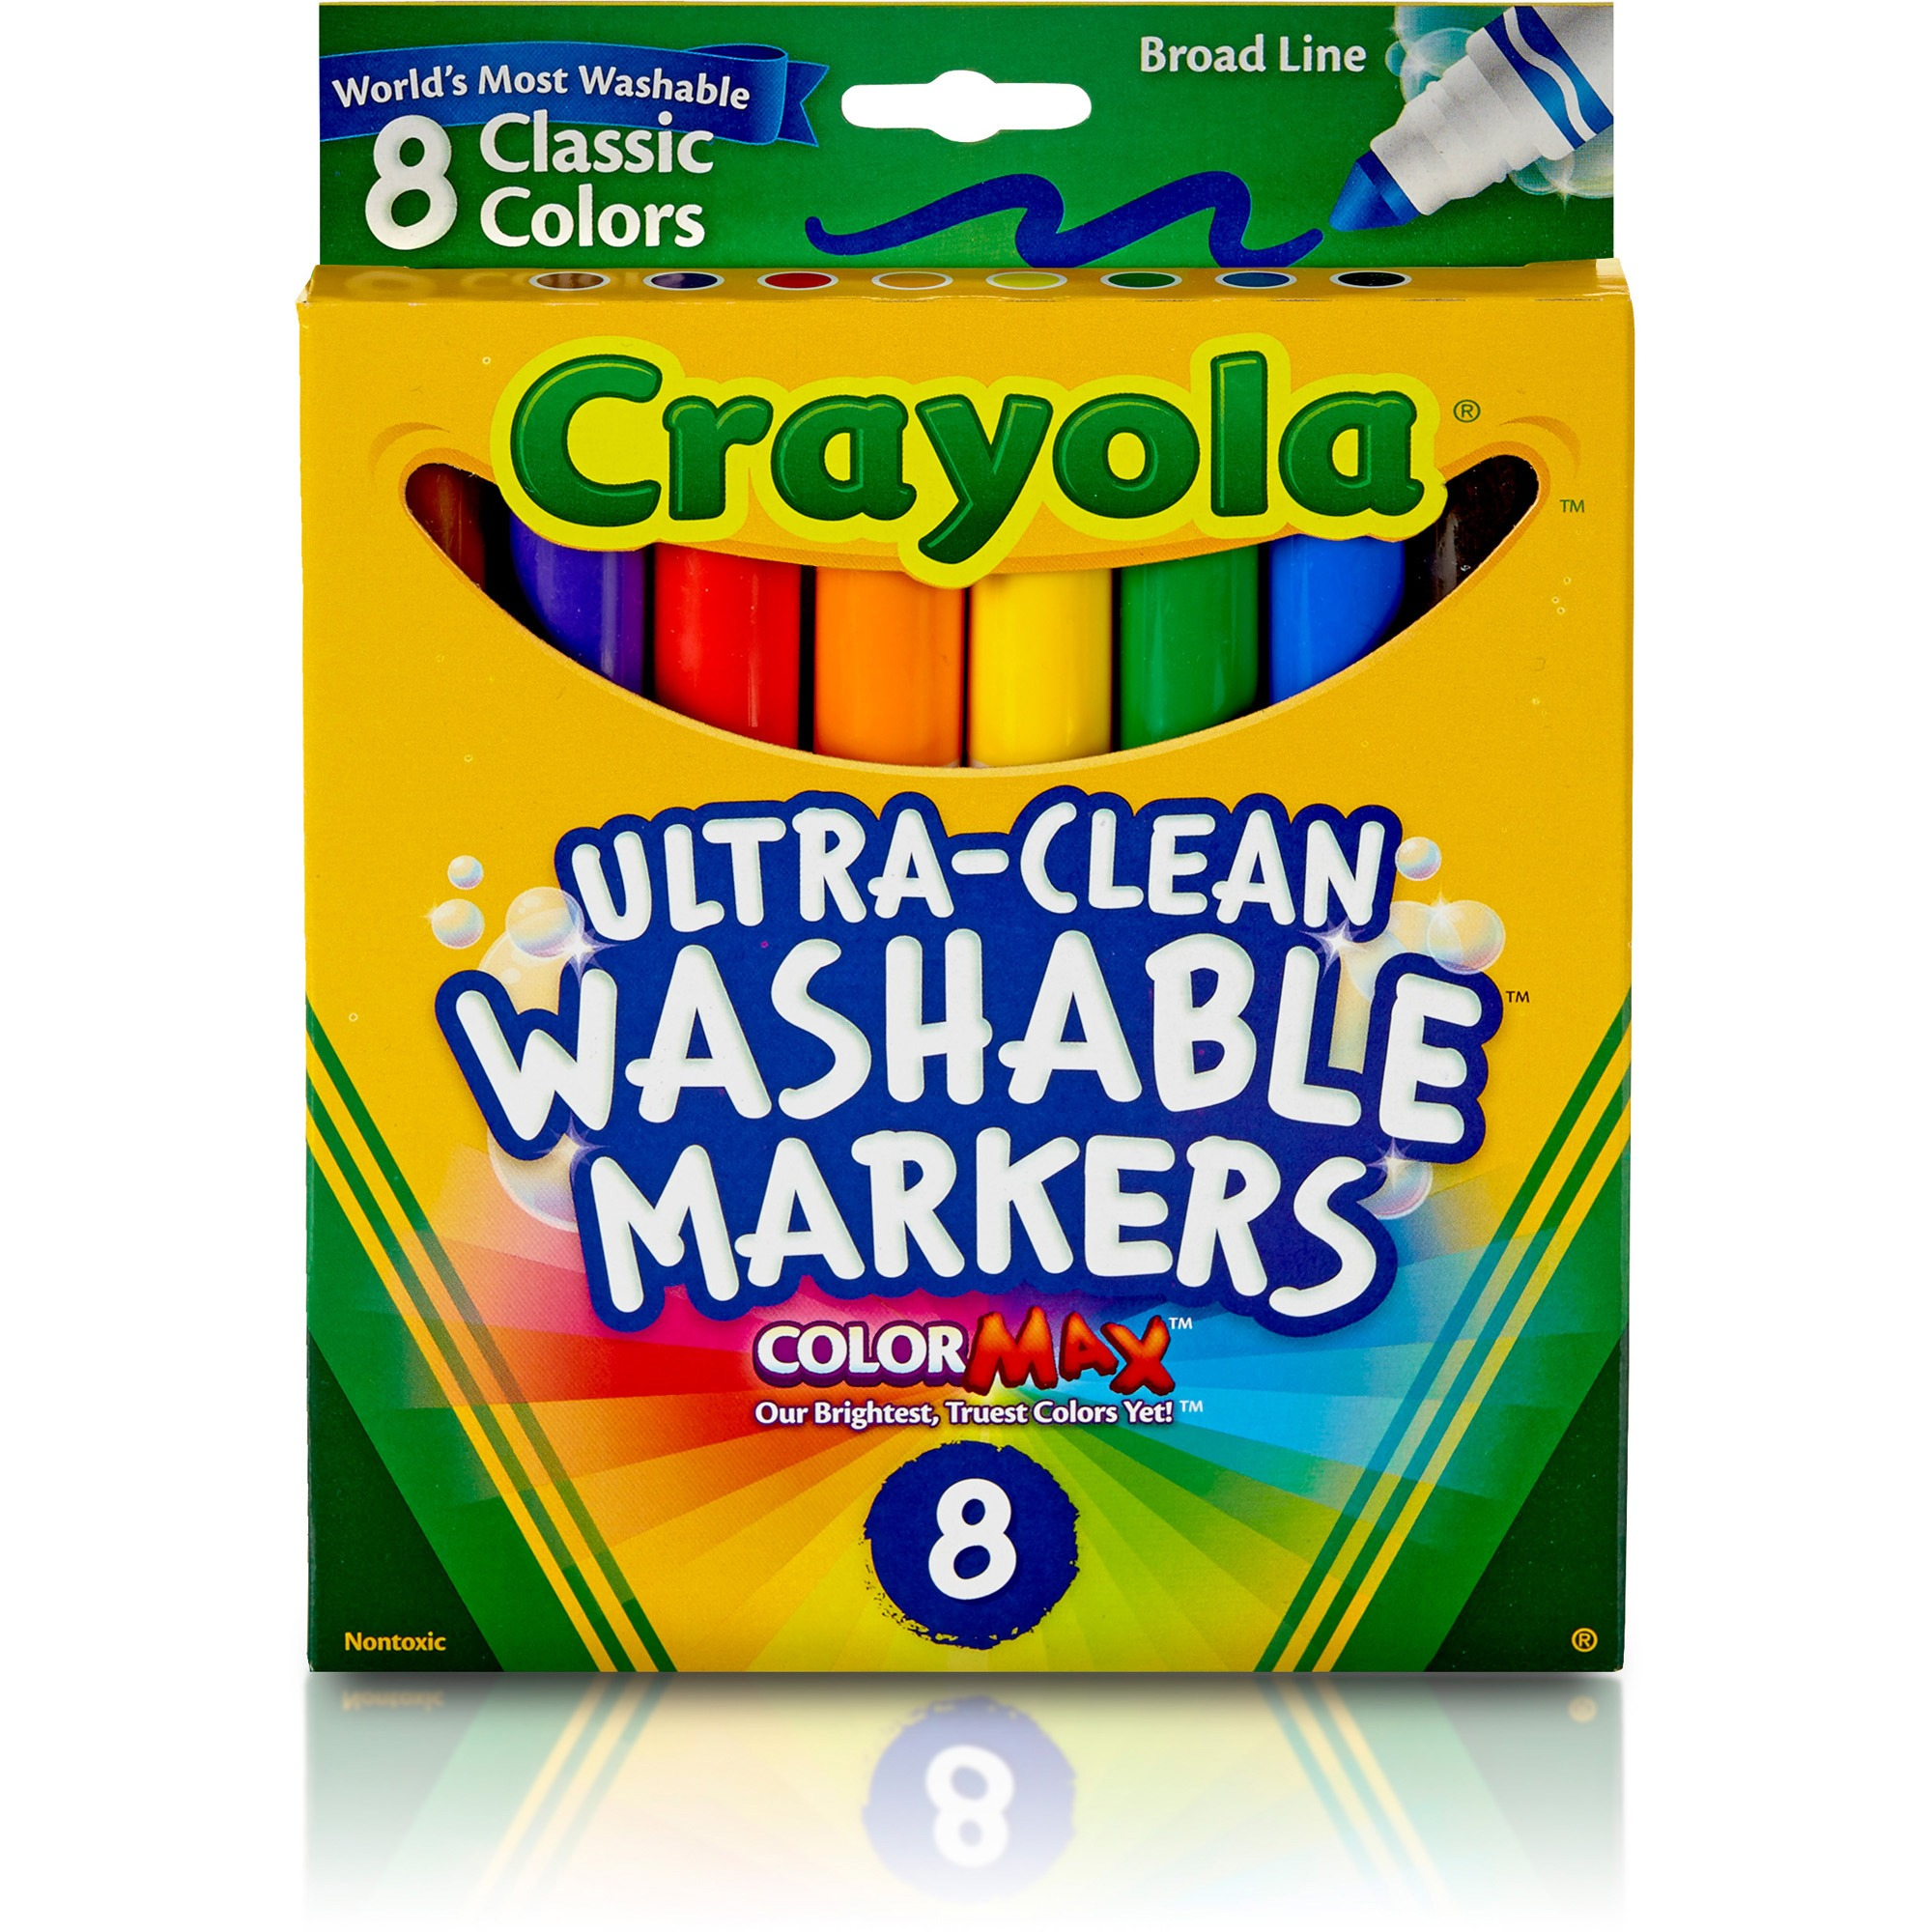 Crayola Washable Markers, Broad Line, Classic Colors, 8-Count